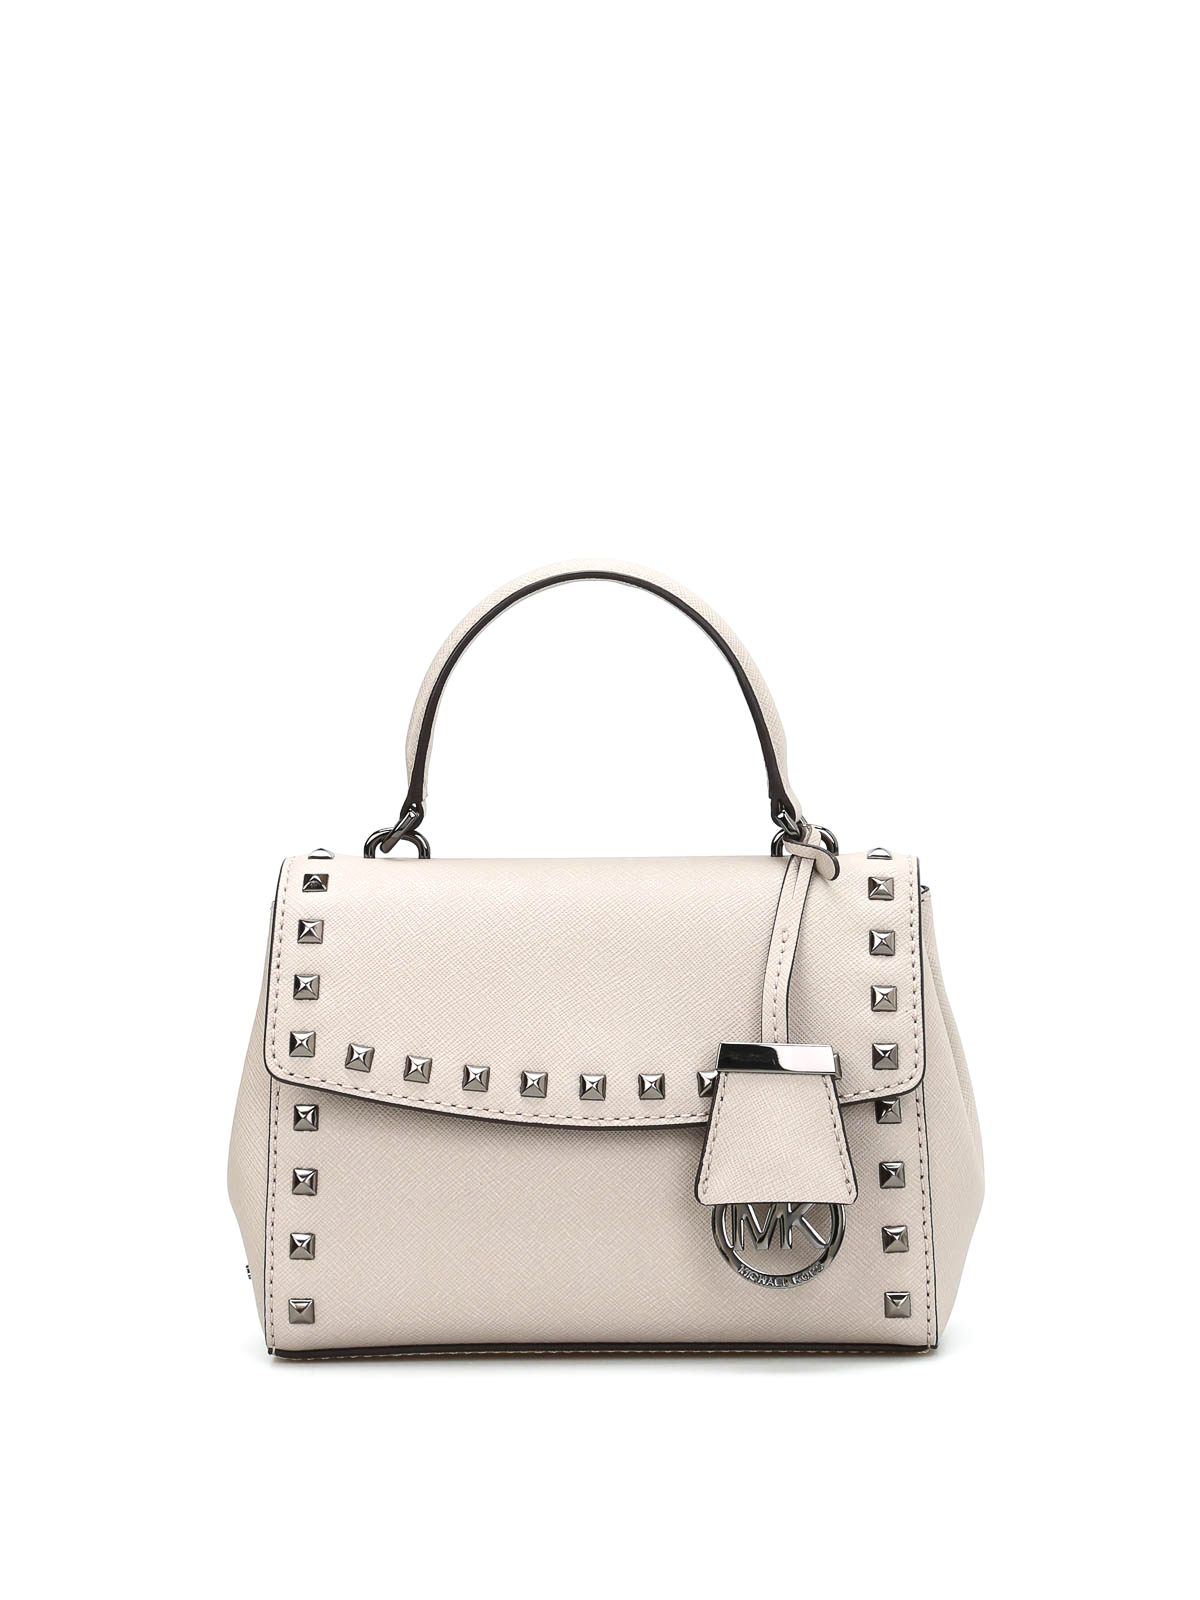 Michael Kors Crossbody Laukut : Ava stud xs saffiano crossbody by michael kors cross